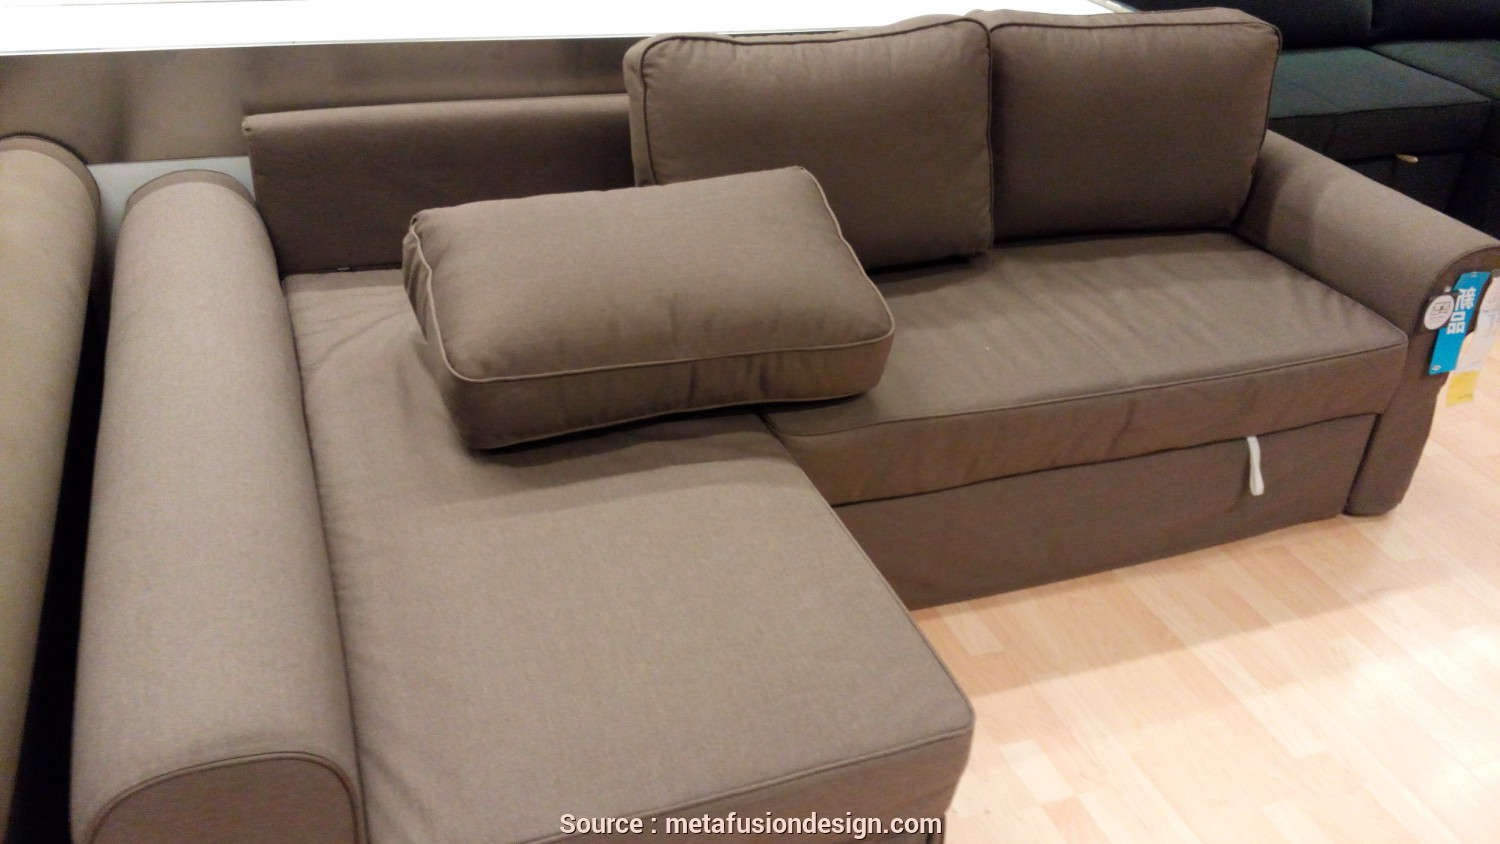 Ikea Backabro Vs Vilasund, Ideale Widely Used Manstad Sofas Pertaining To Ikea Vilasund, Backabro Review, Return Of, Sofa